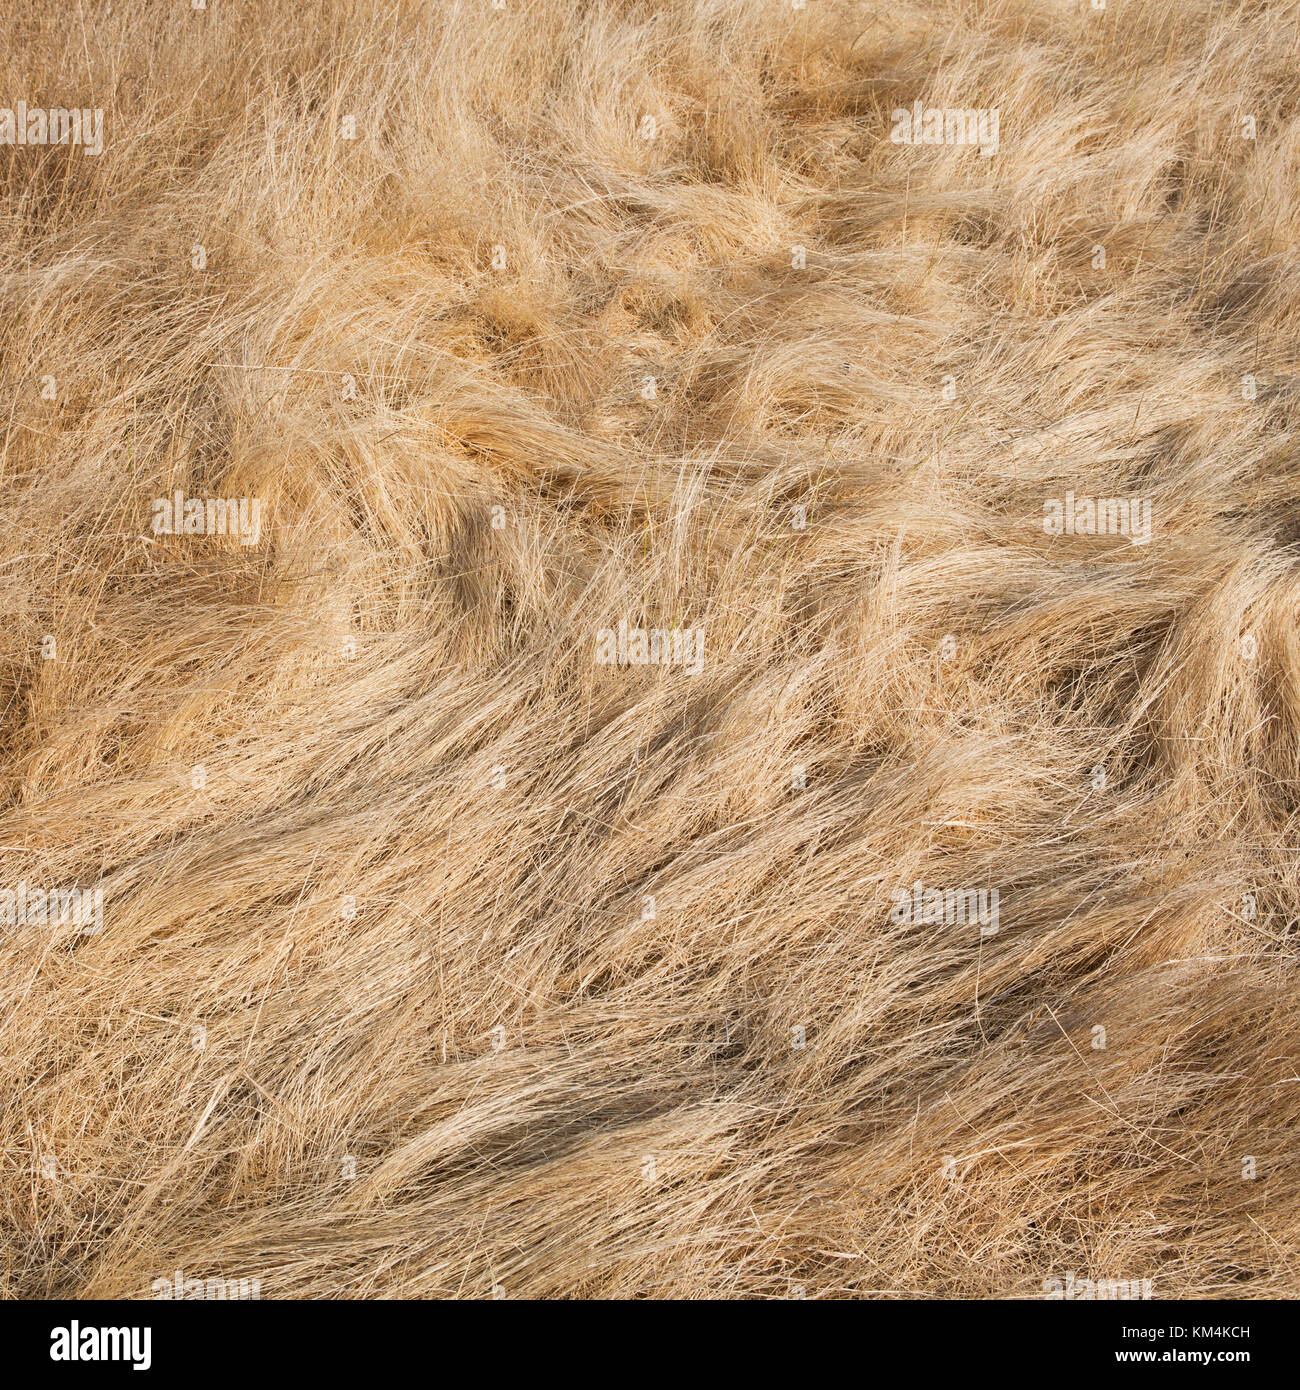 Detail of windswept field of dry summer grass, Discovery Park, King County, Seattle, Washington. - Stock Image